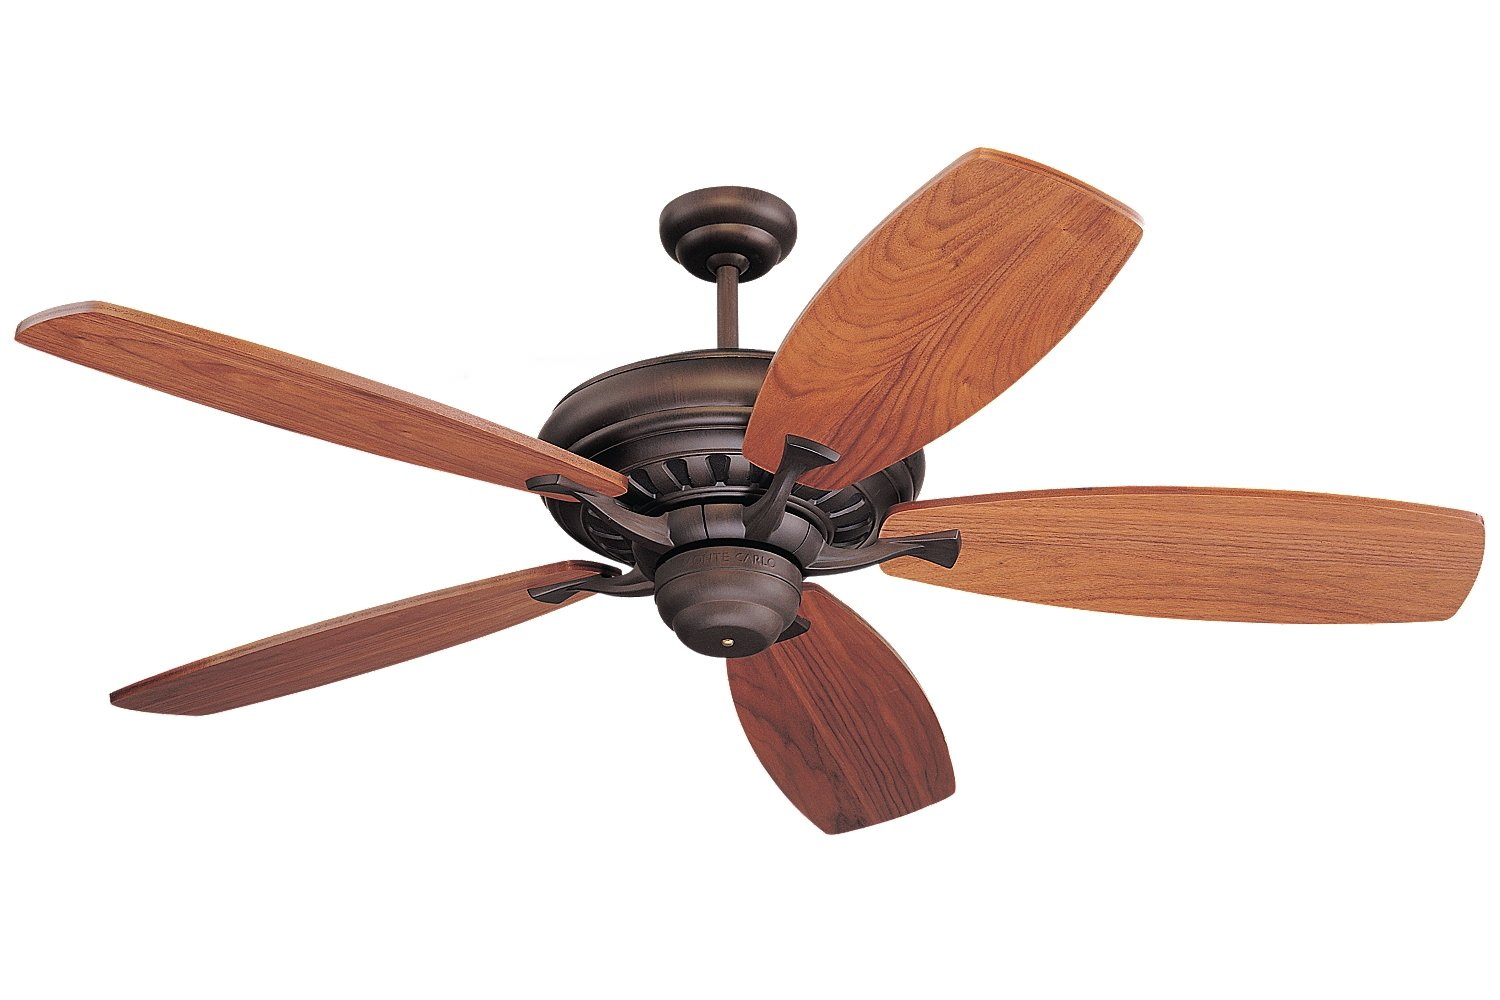 Monte Carlo 5MXRB, Maxima Ceiling Fan with MC5B100 Blades,54'',Roman Bronze